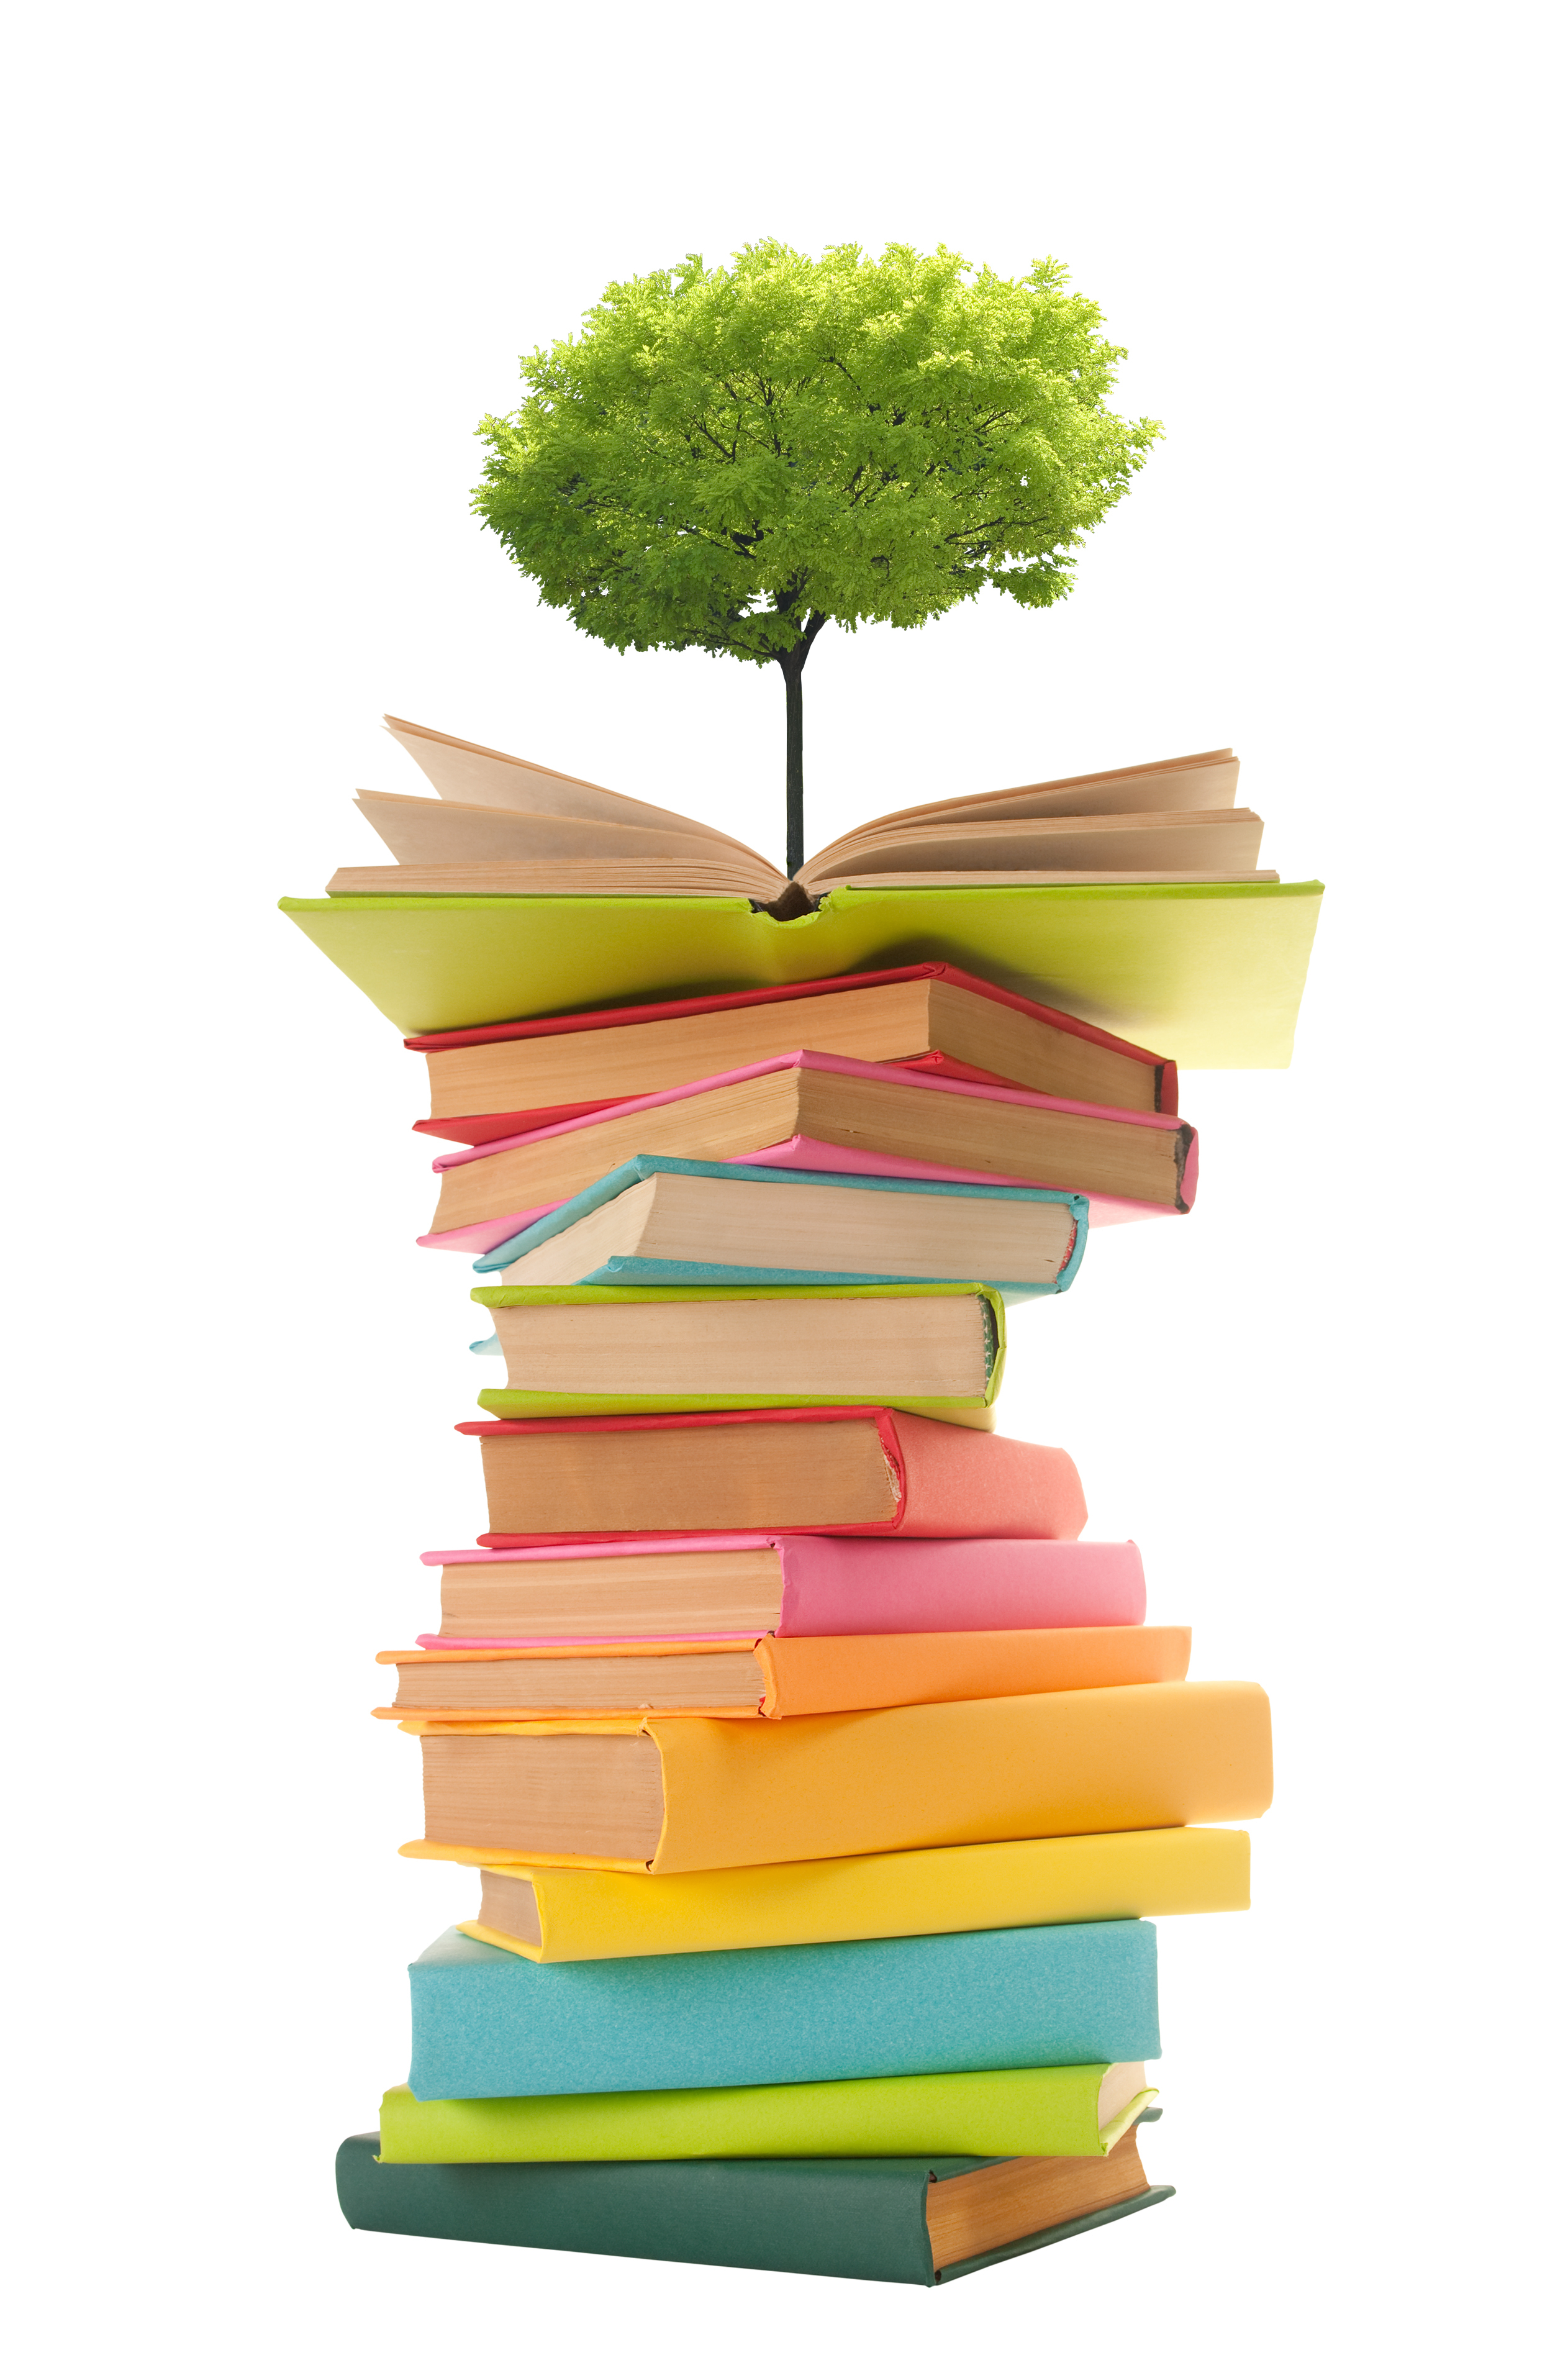 a tree growing on a stack of books 55090